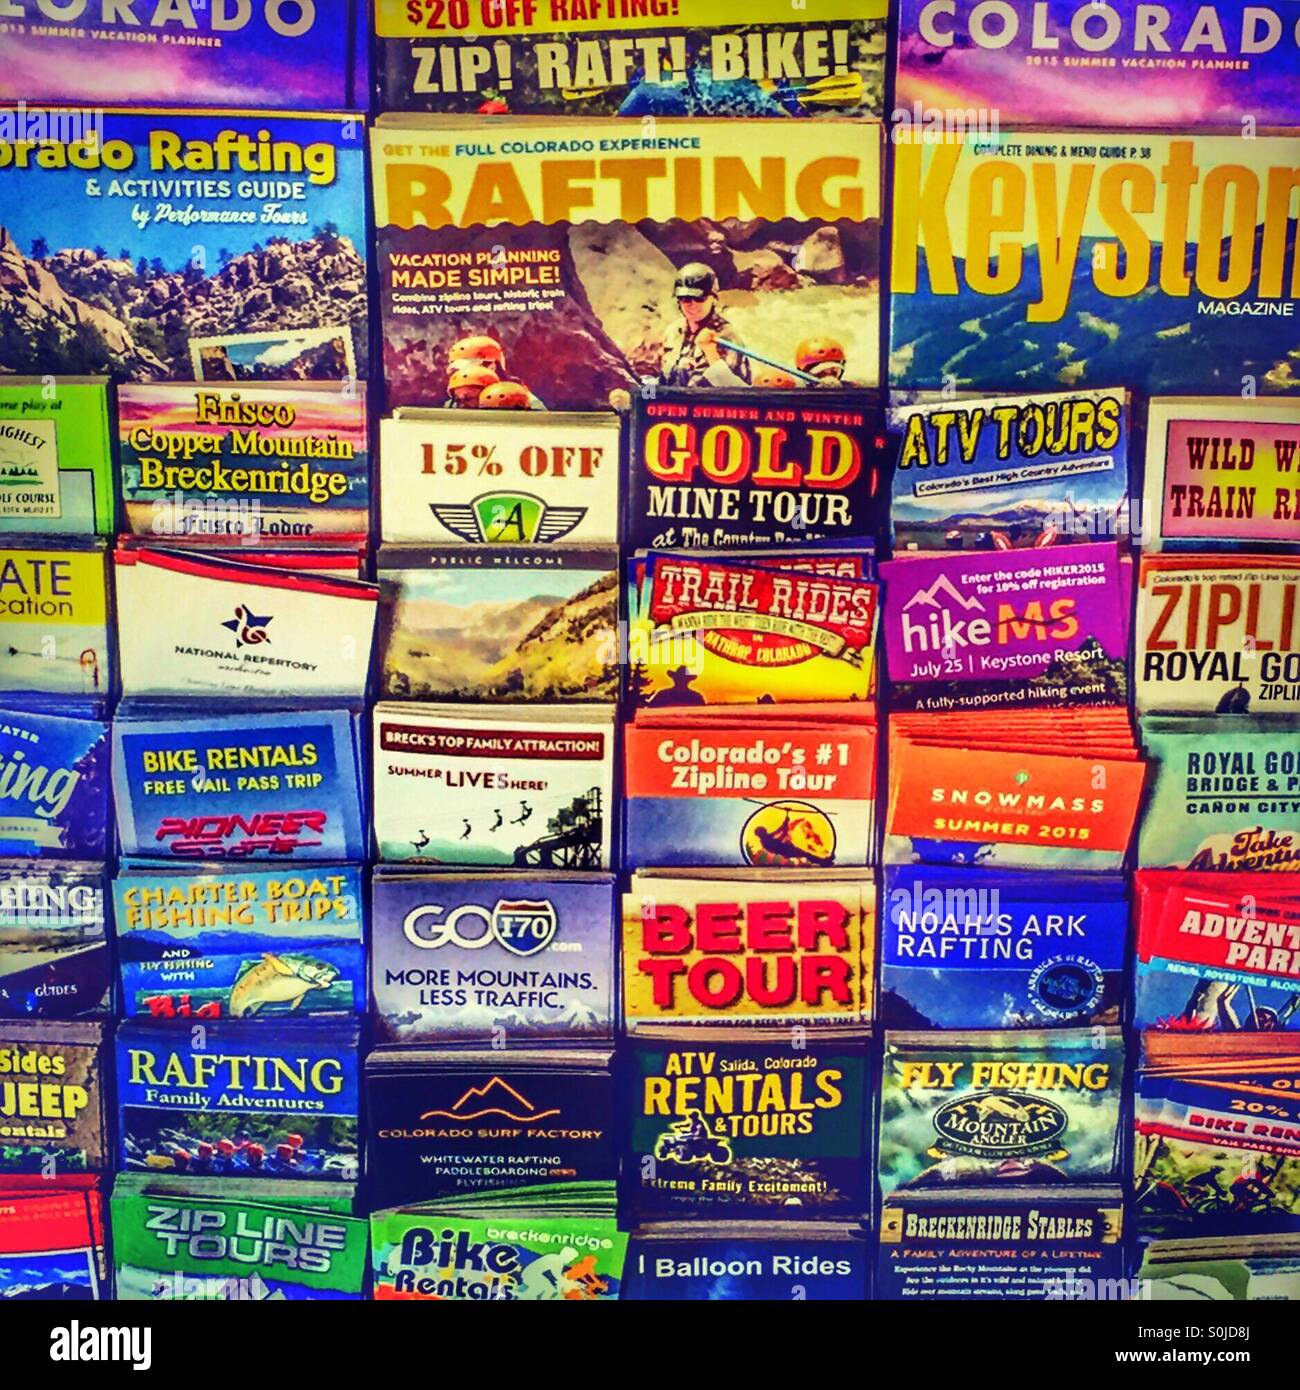 Travel brochures on display - Stock Image